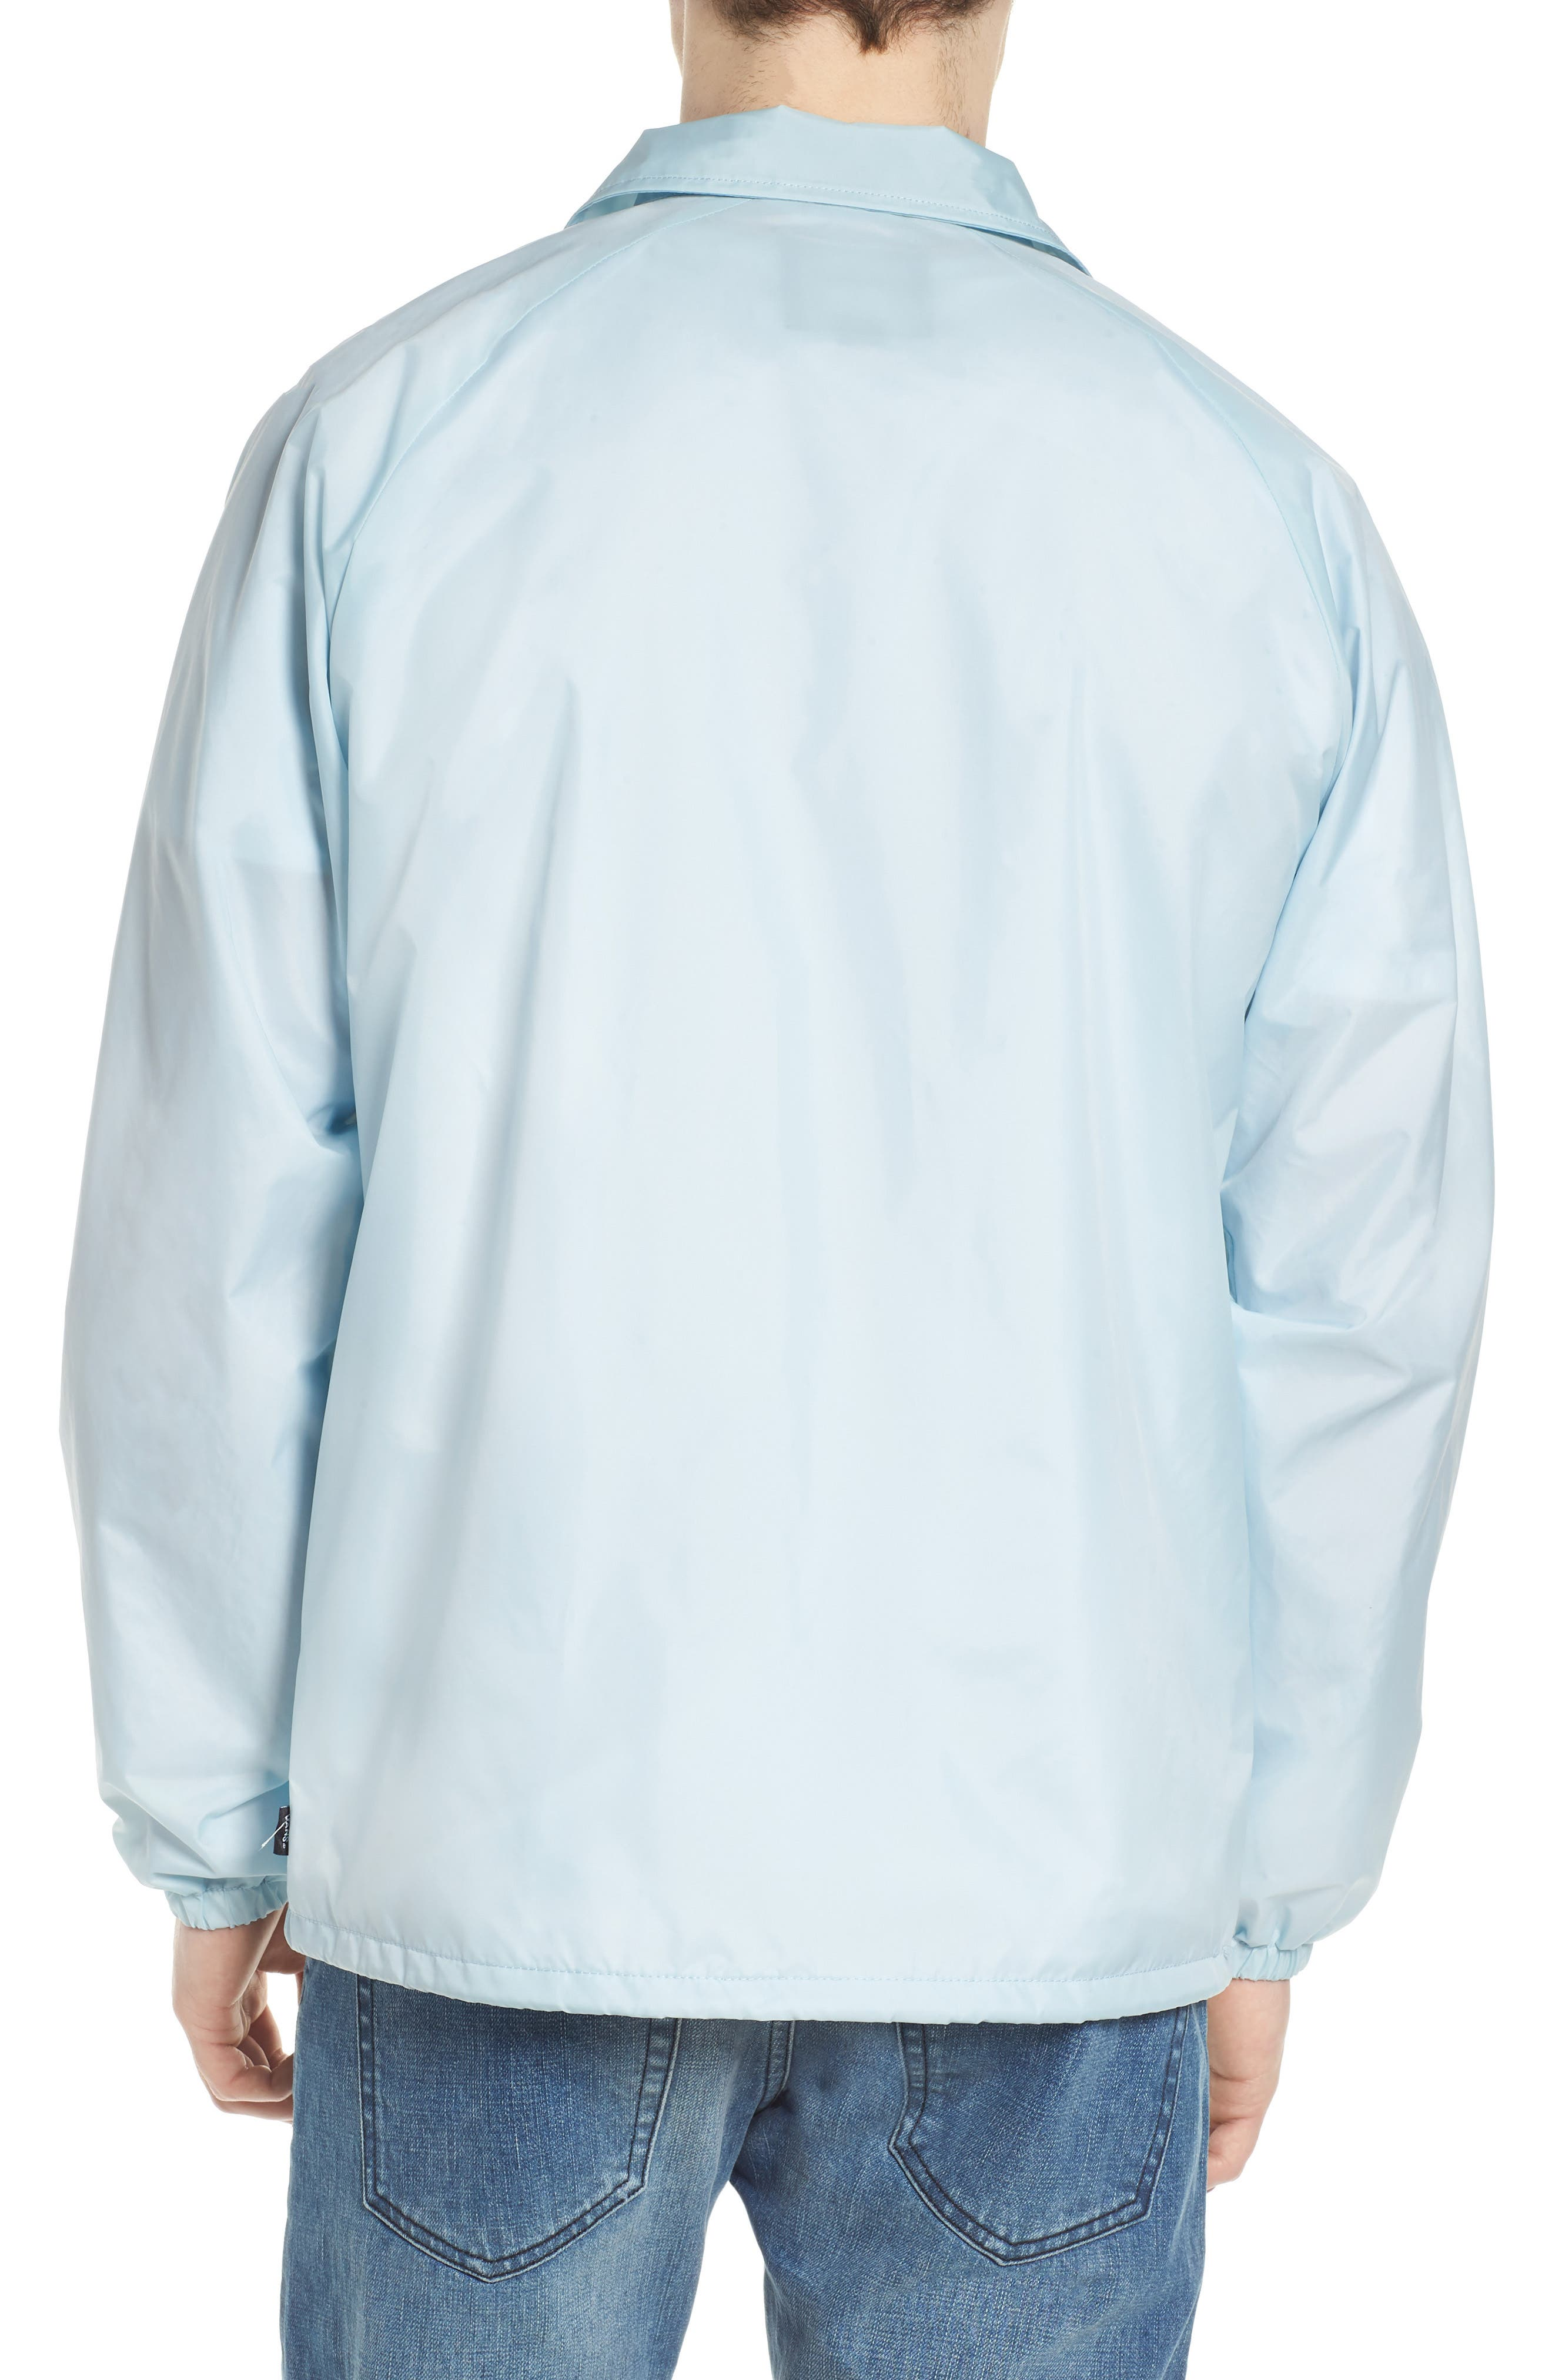 Torrey Water Resistant Jacket,                             Alternate thumbnail 2, color,                             Baby Blue